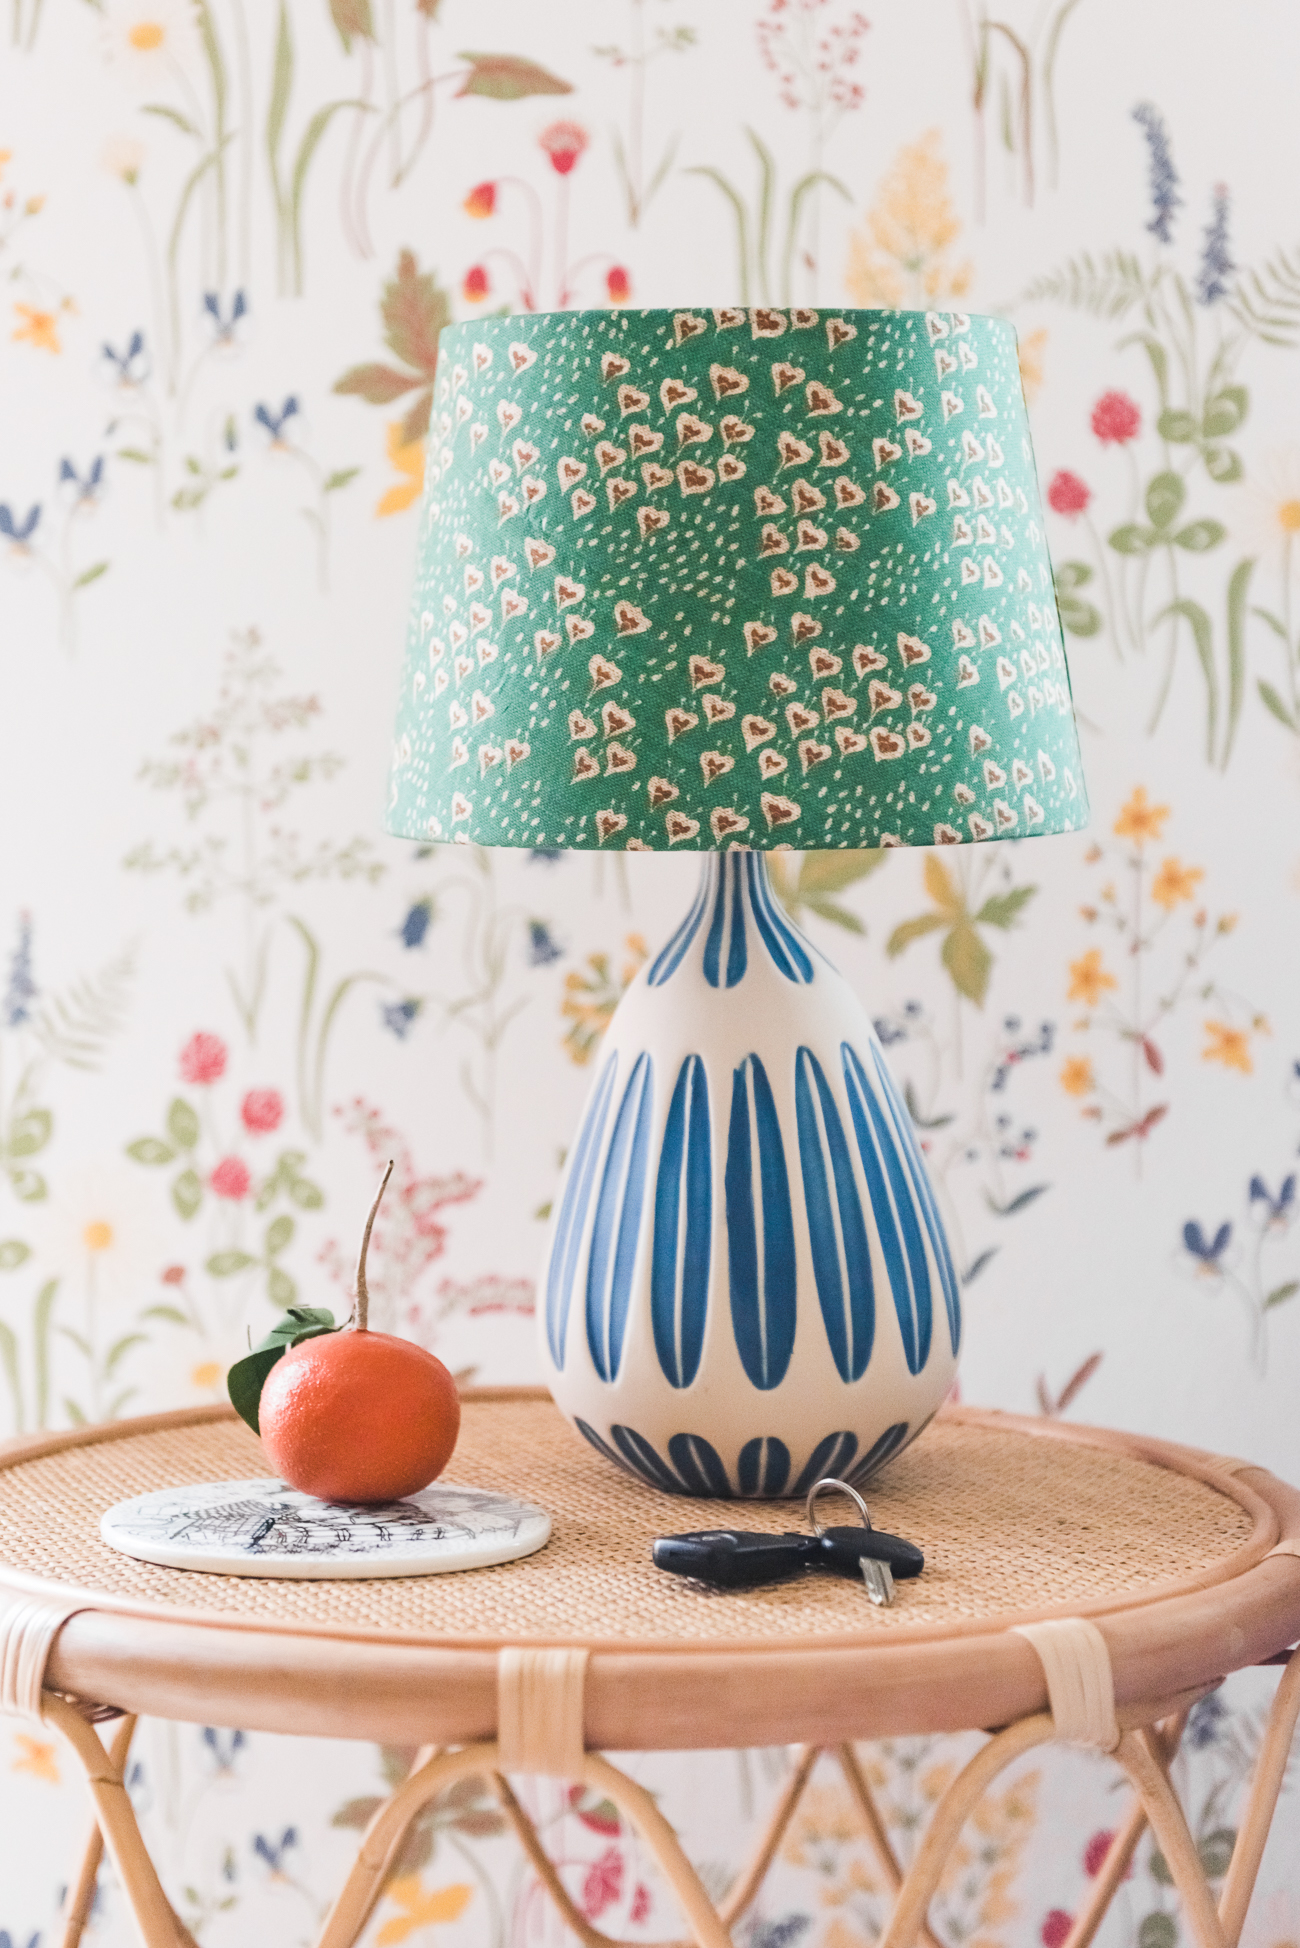 3 DIY lampshades made with unexpected recycled materials